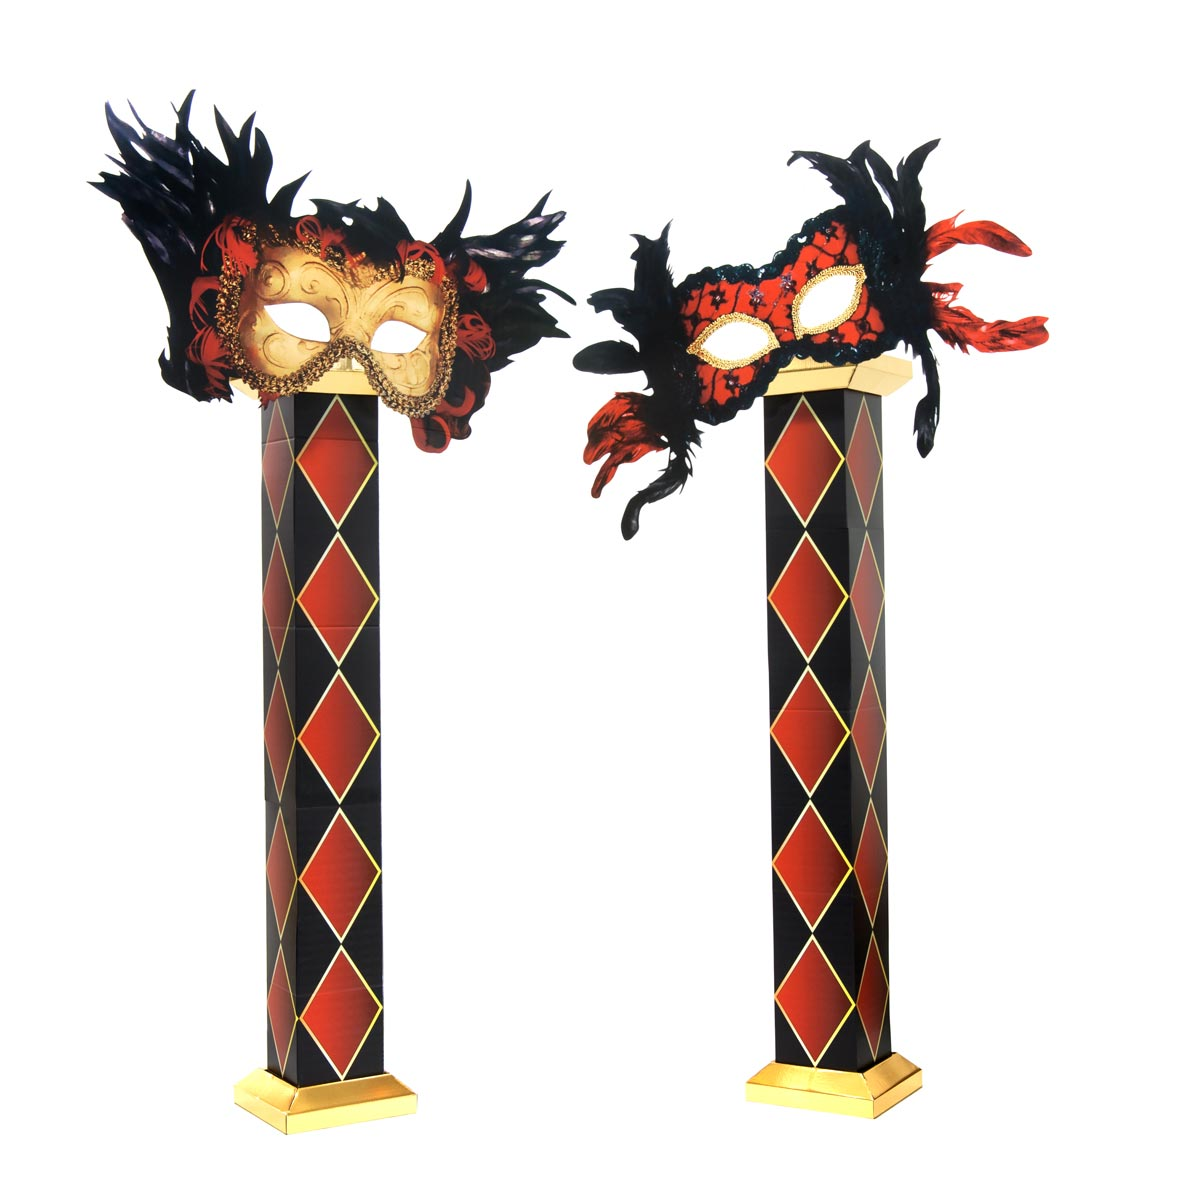 Harlequin Columns Kit (set of 2)